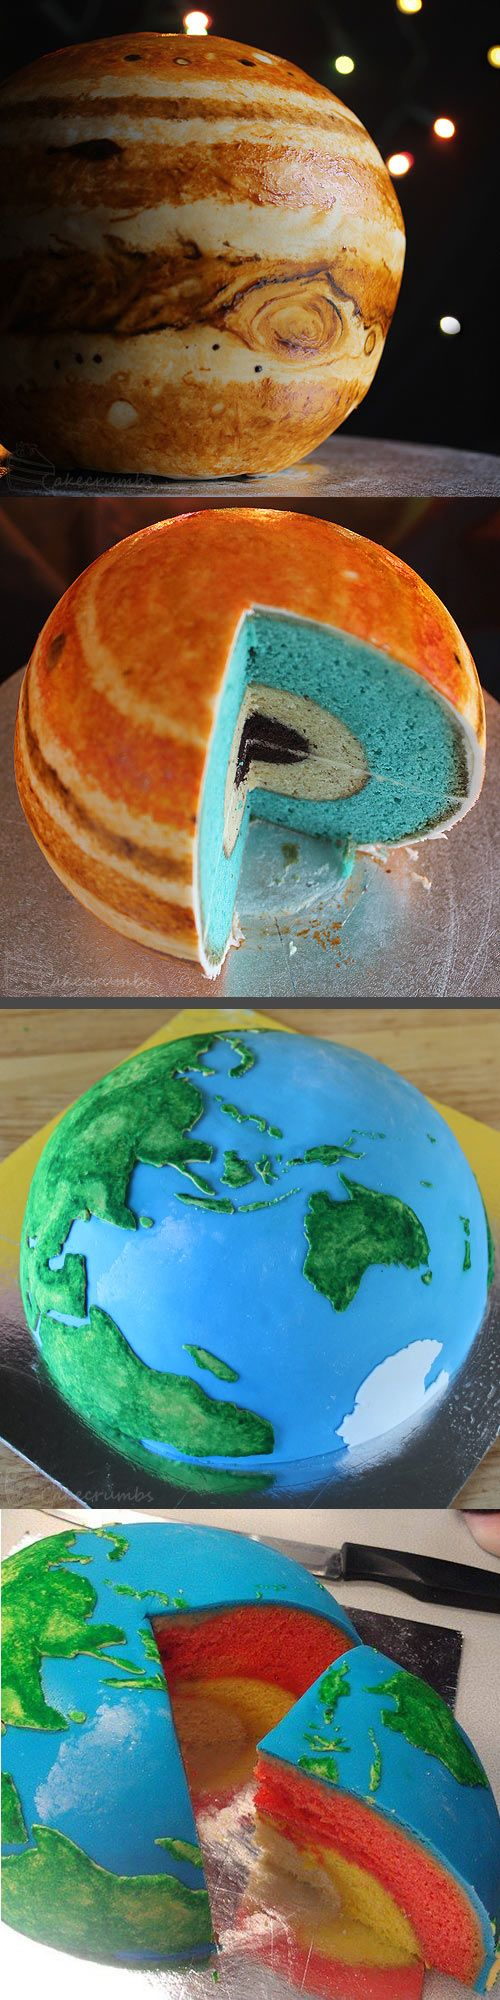 Planet cakes…I don't know whether to put this in science or food...